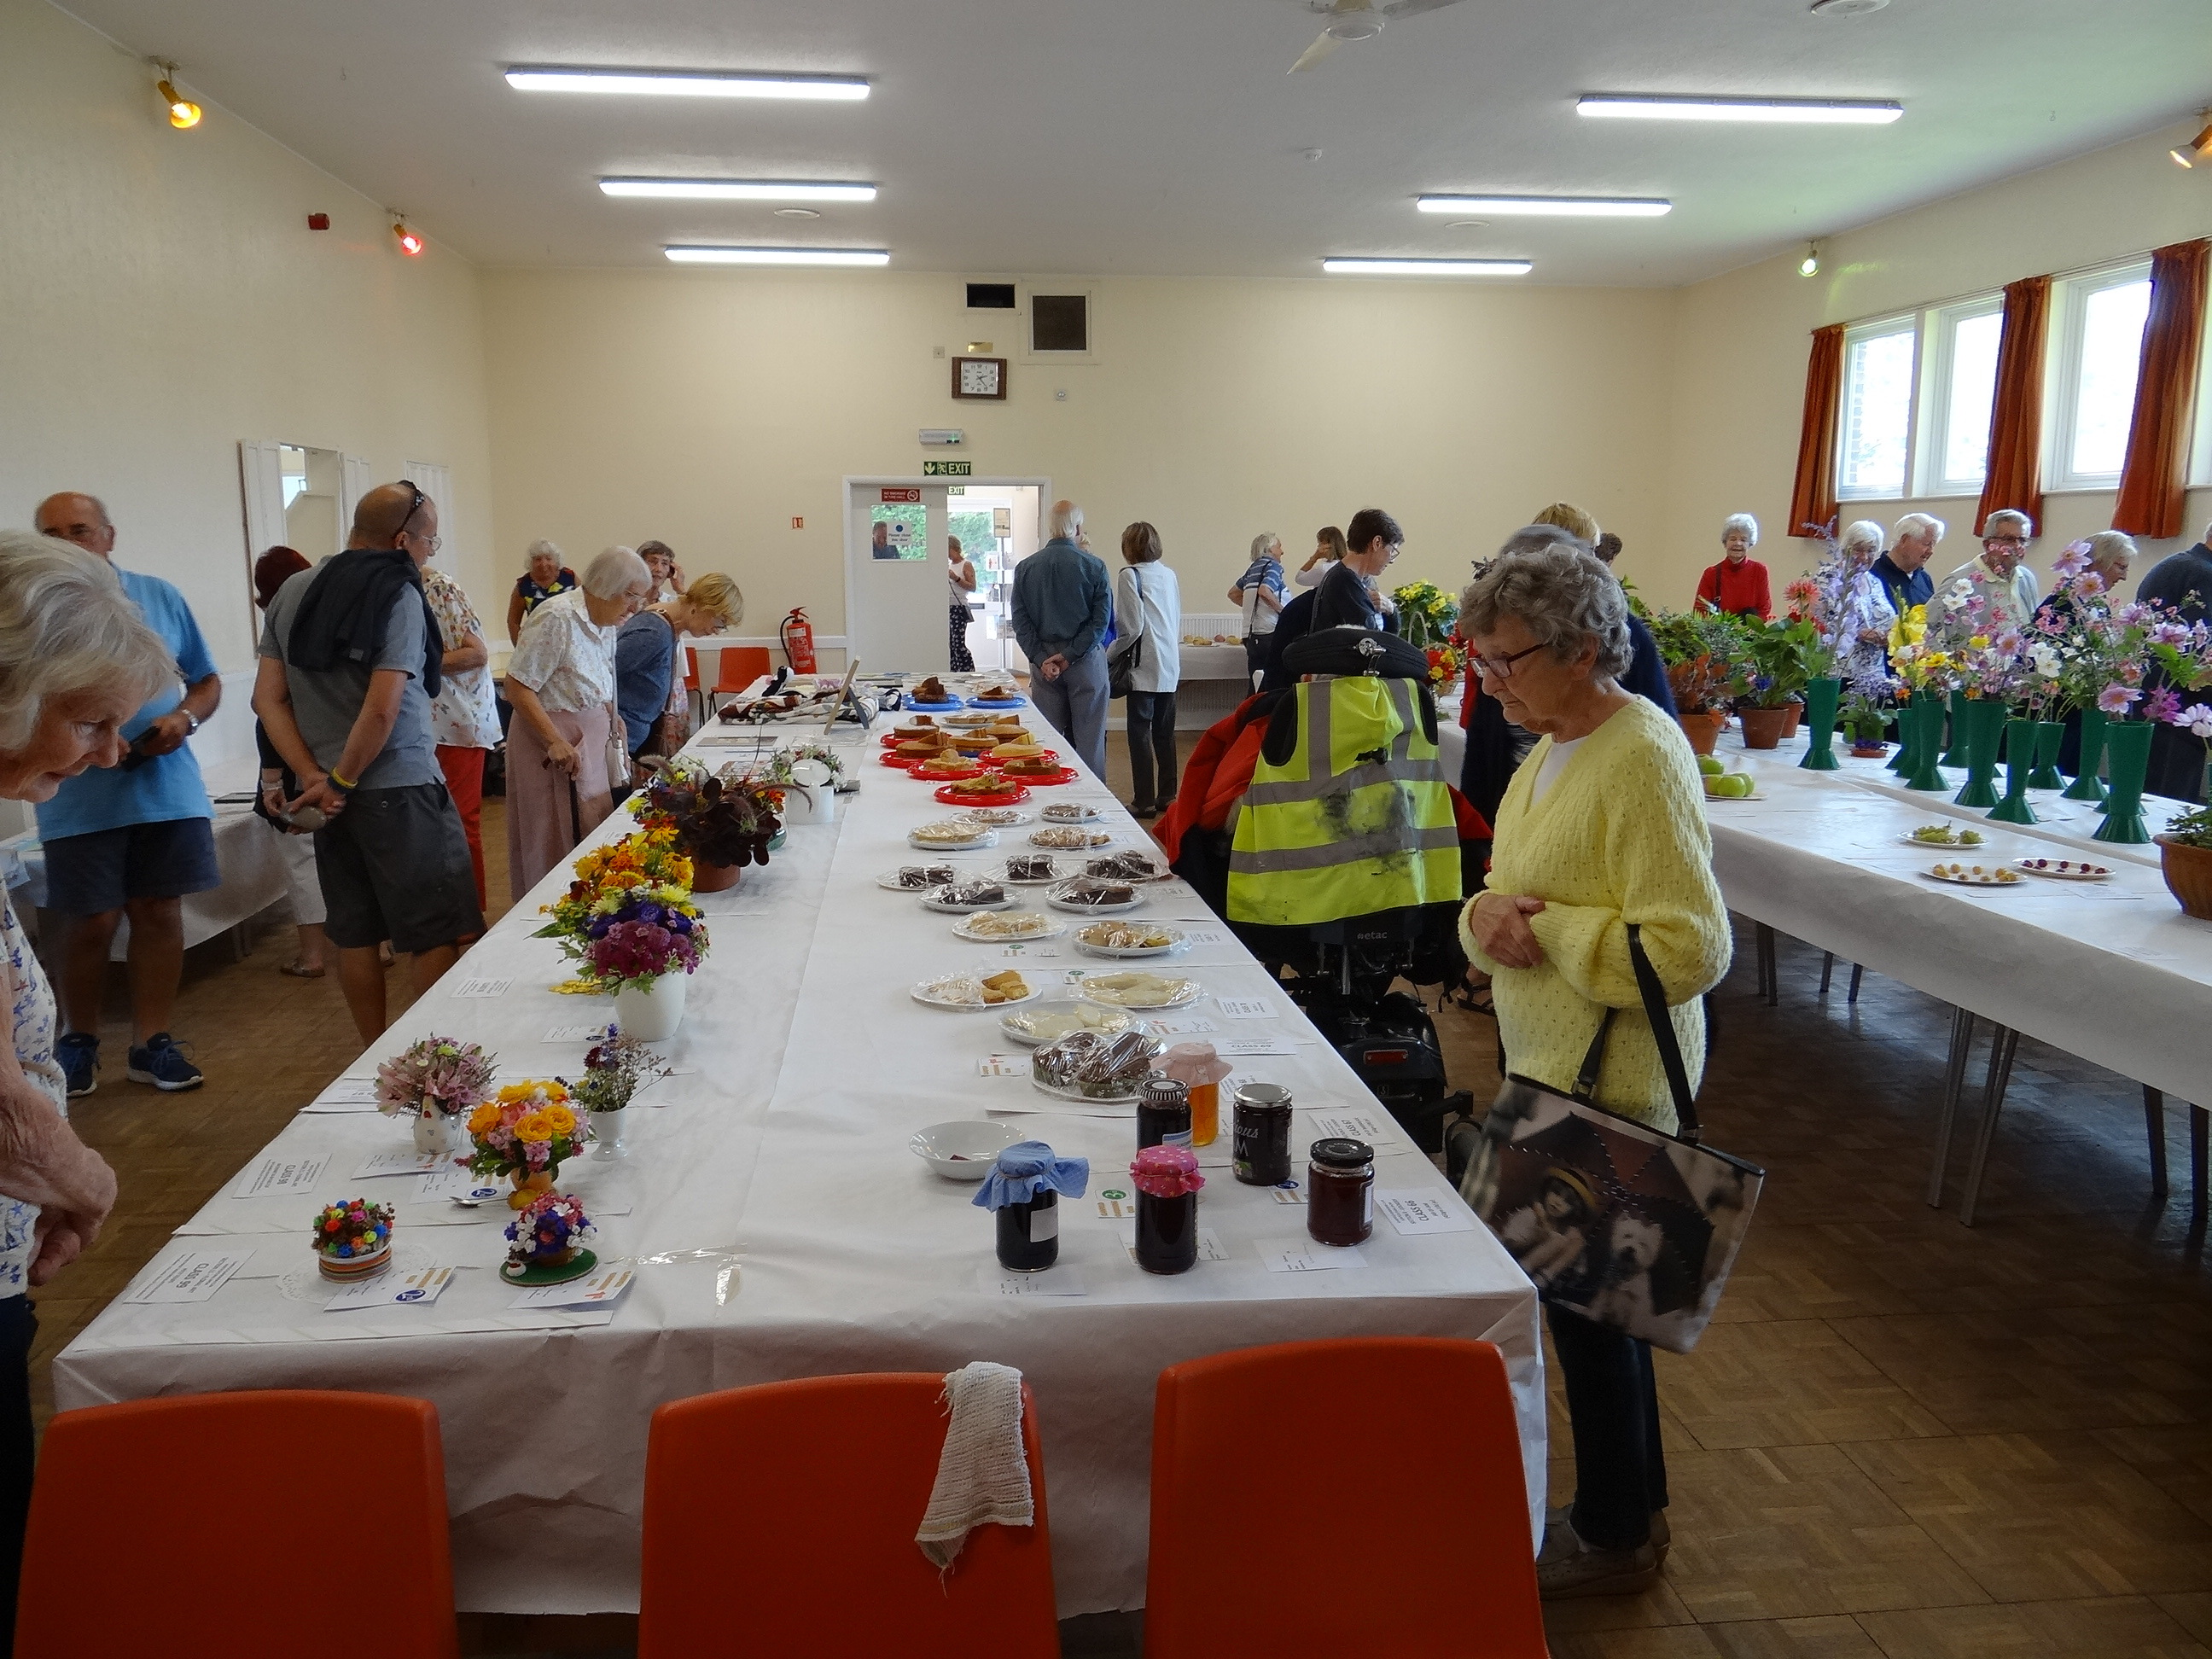 Clanfield Horticultural Show is a prized event